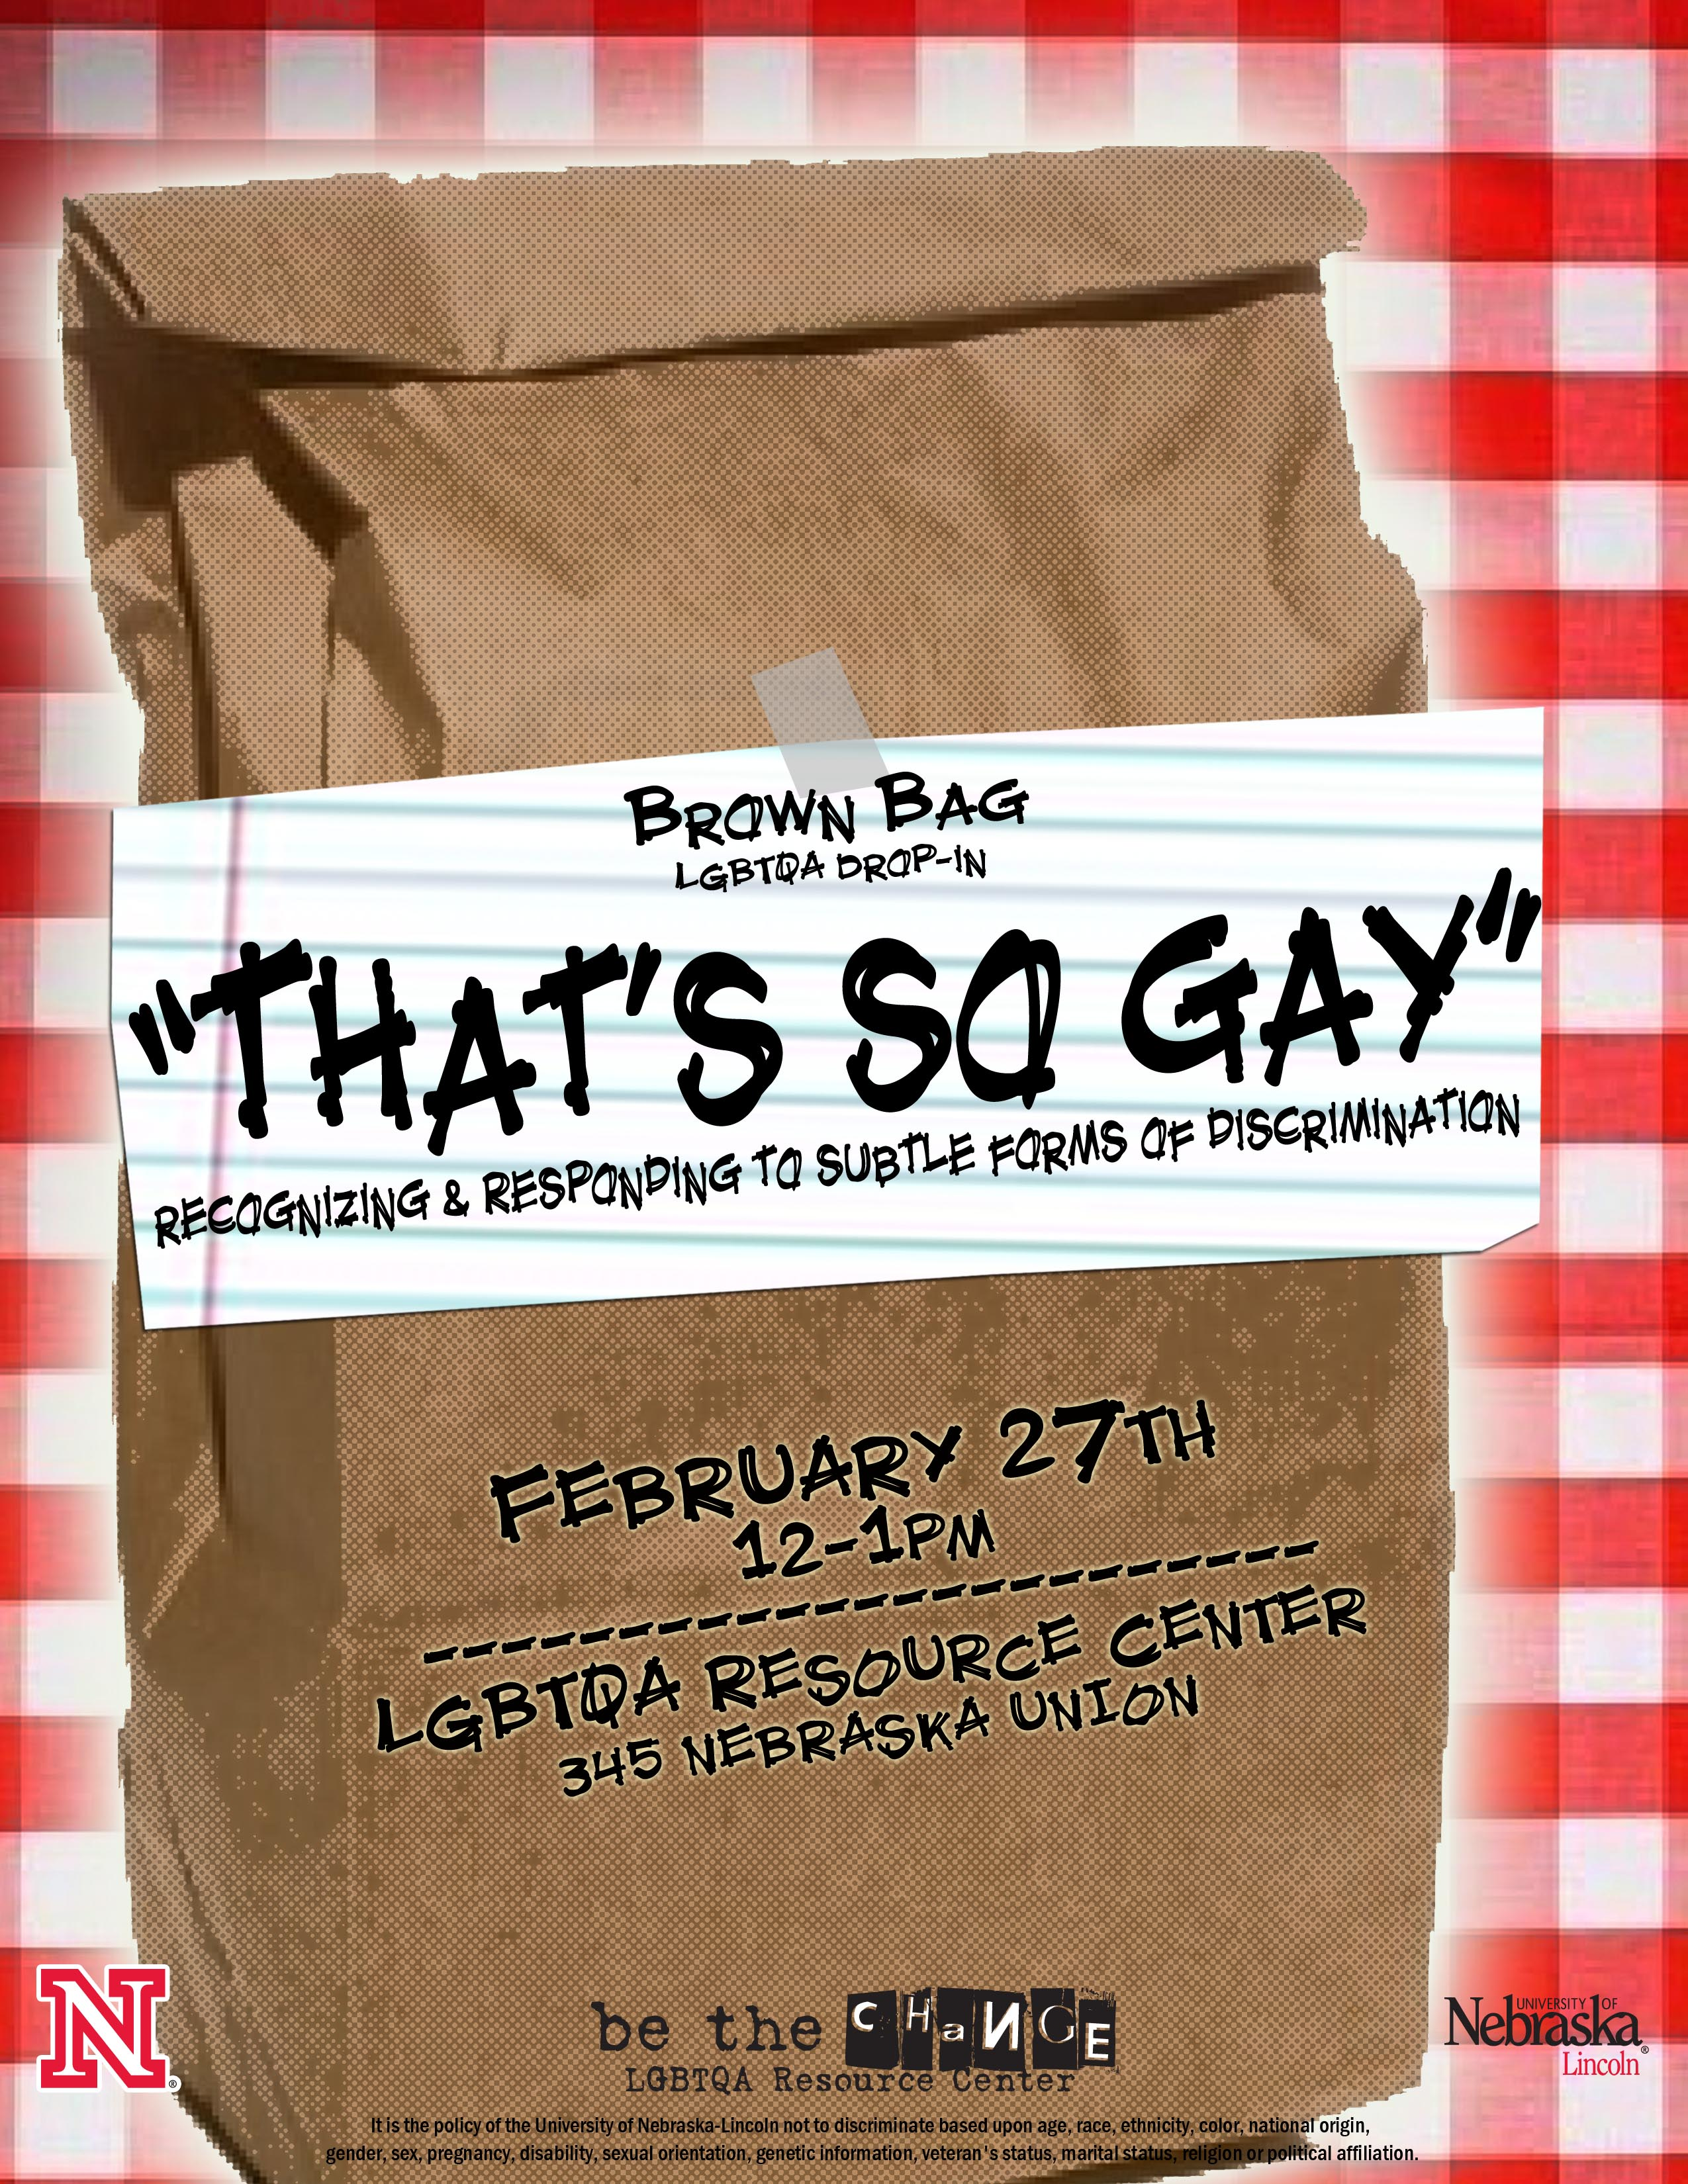 """Brown Bag LGBTQA Drop-In: """"That's so gay""""...Recognizing & Responding to Subtle Forms of Discrimination"""